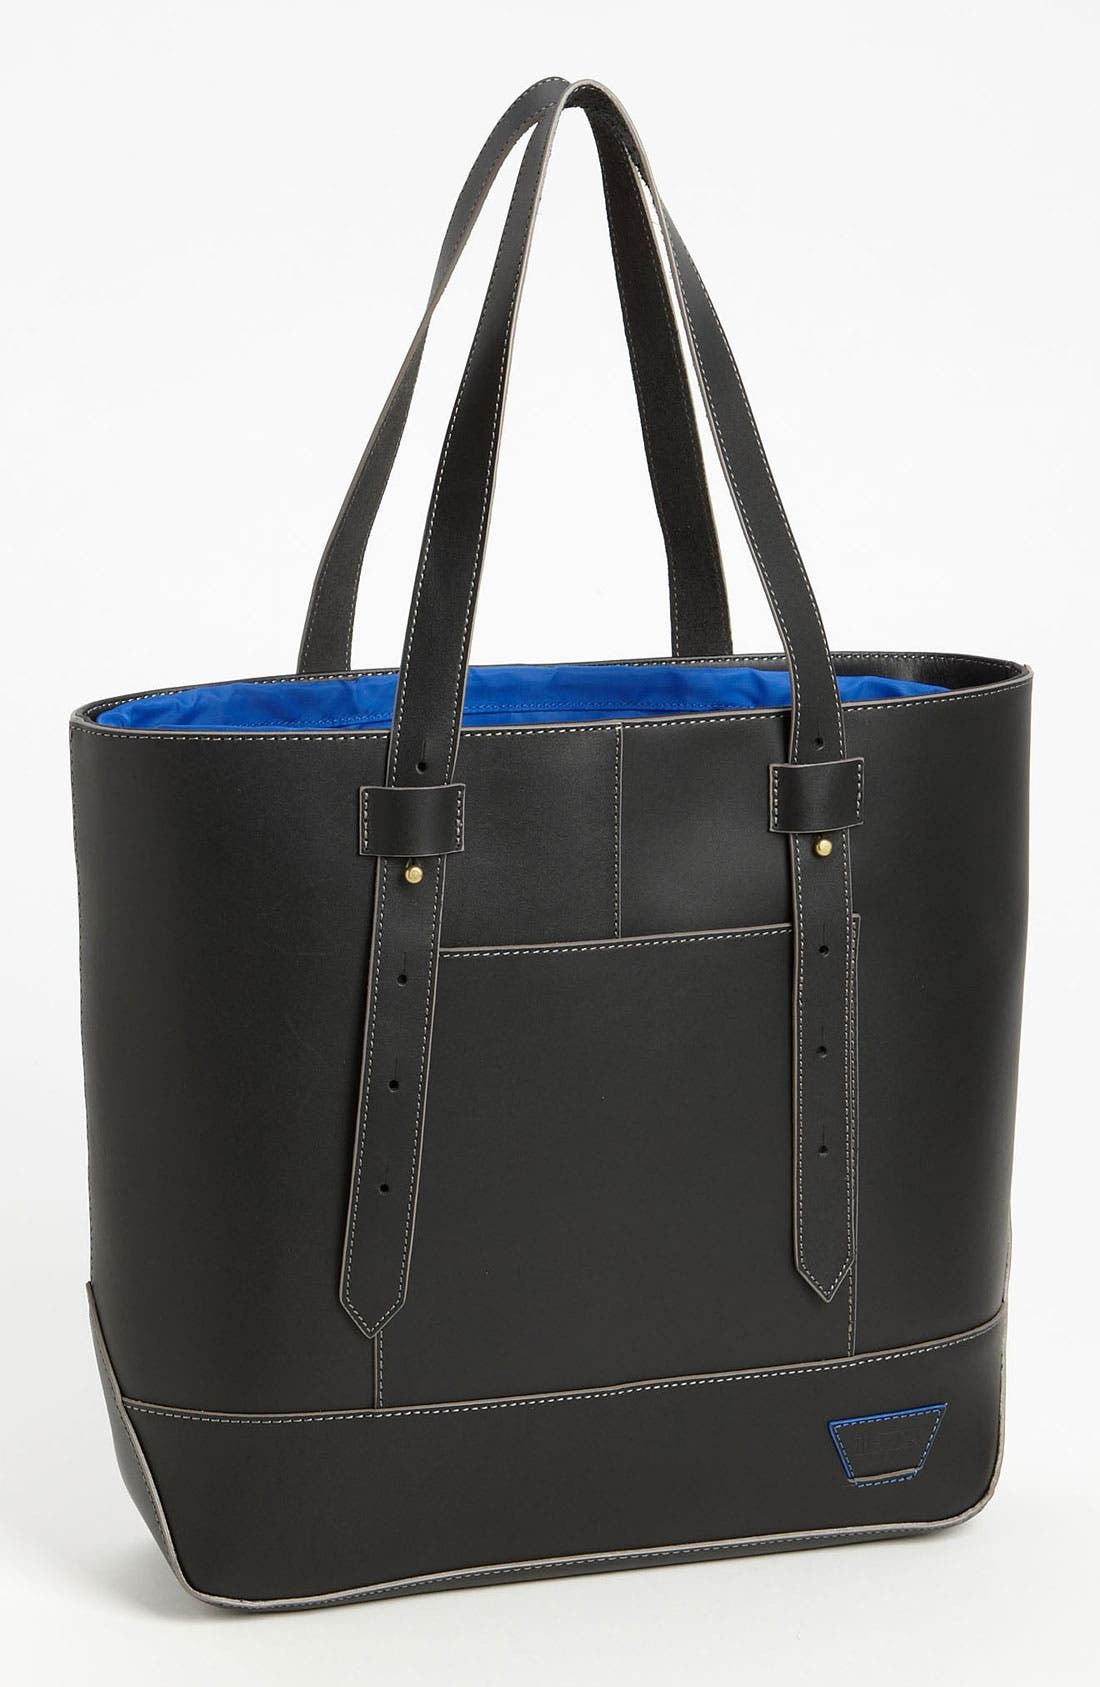 Main Image - IIIBeCa By Joy Gryson 'Reade Street' Tote